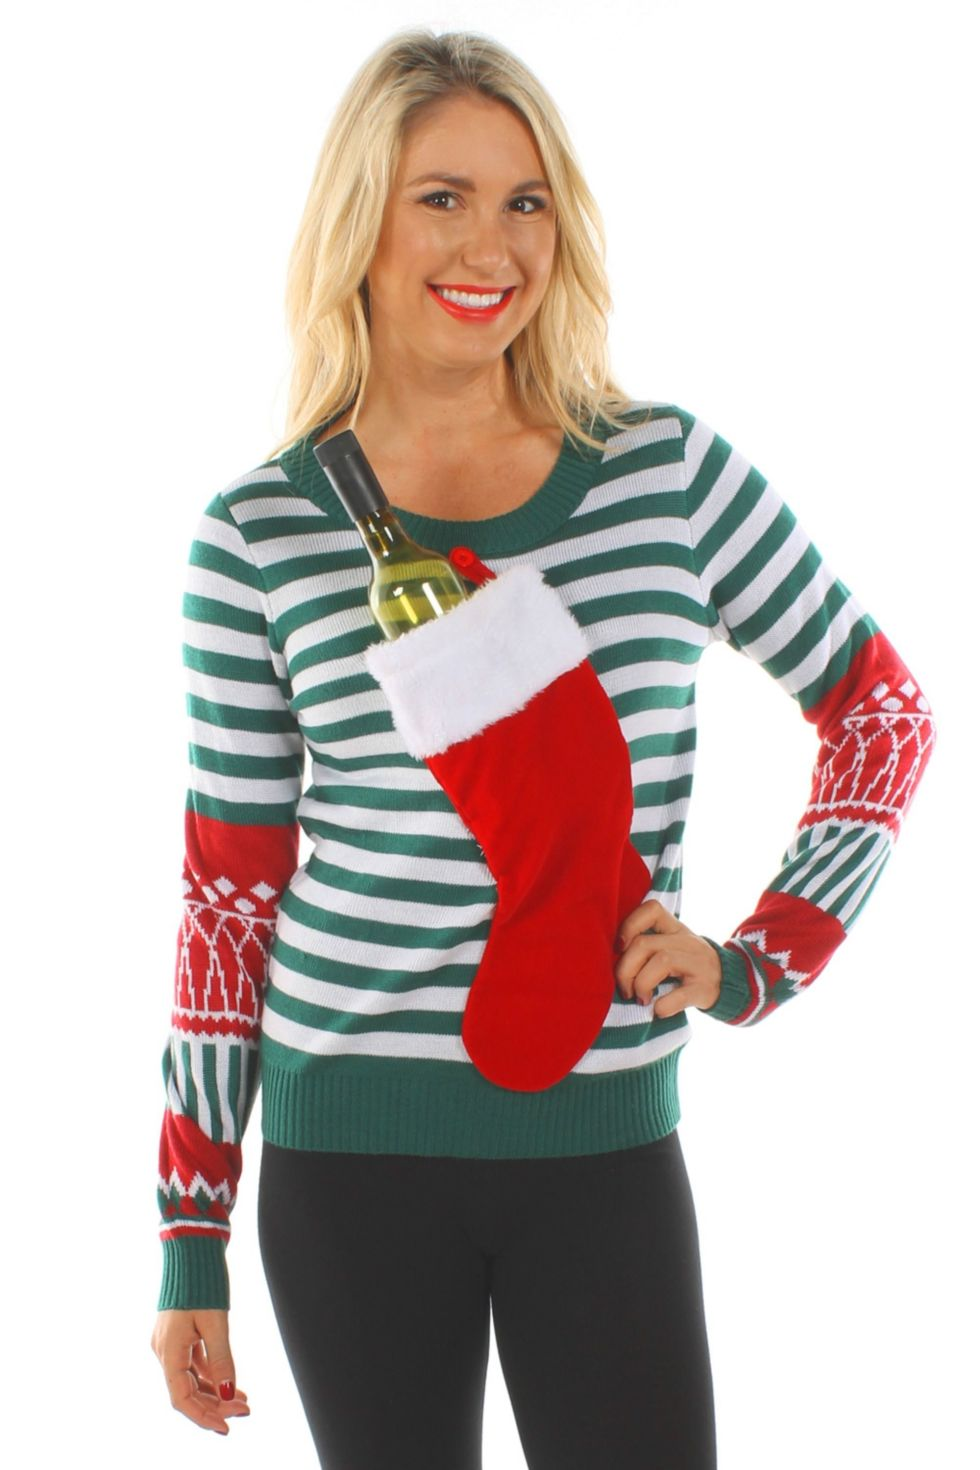 23 Ugly Christmas Sweater Ideas to Buy and DIY - Tacky Christmas ...